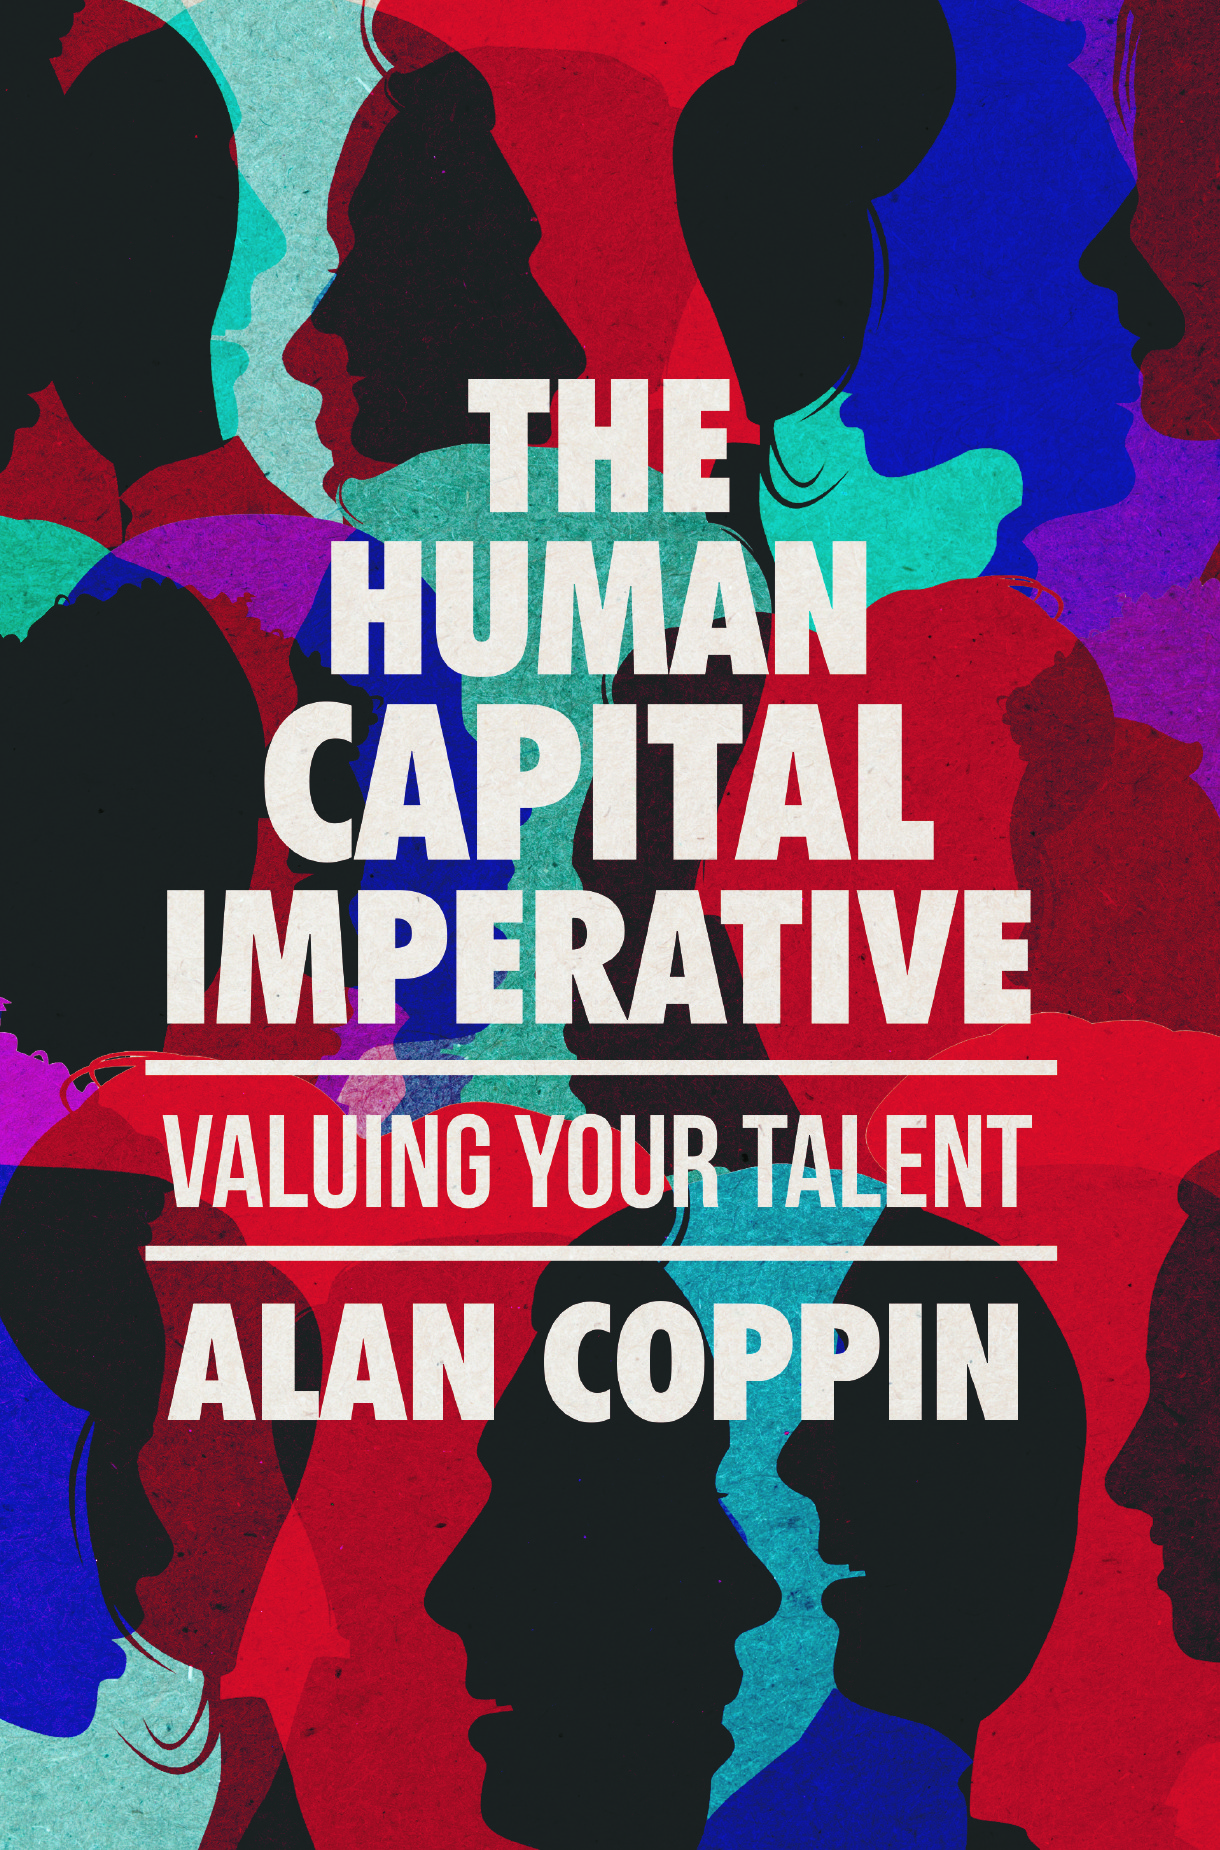 Coppin, Alan - The Human Capital Imperative, ebook